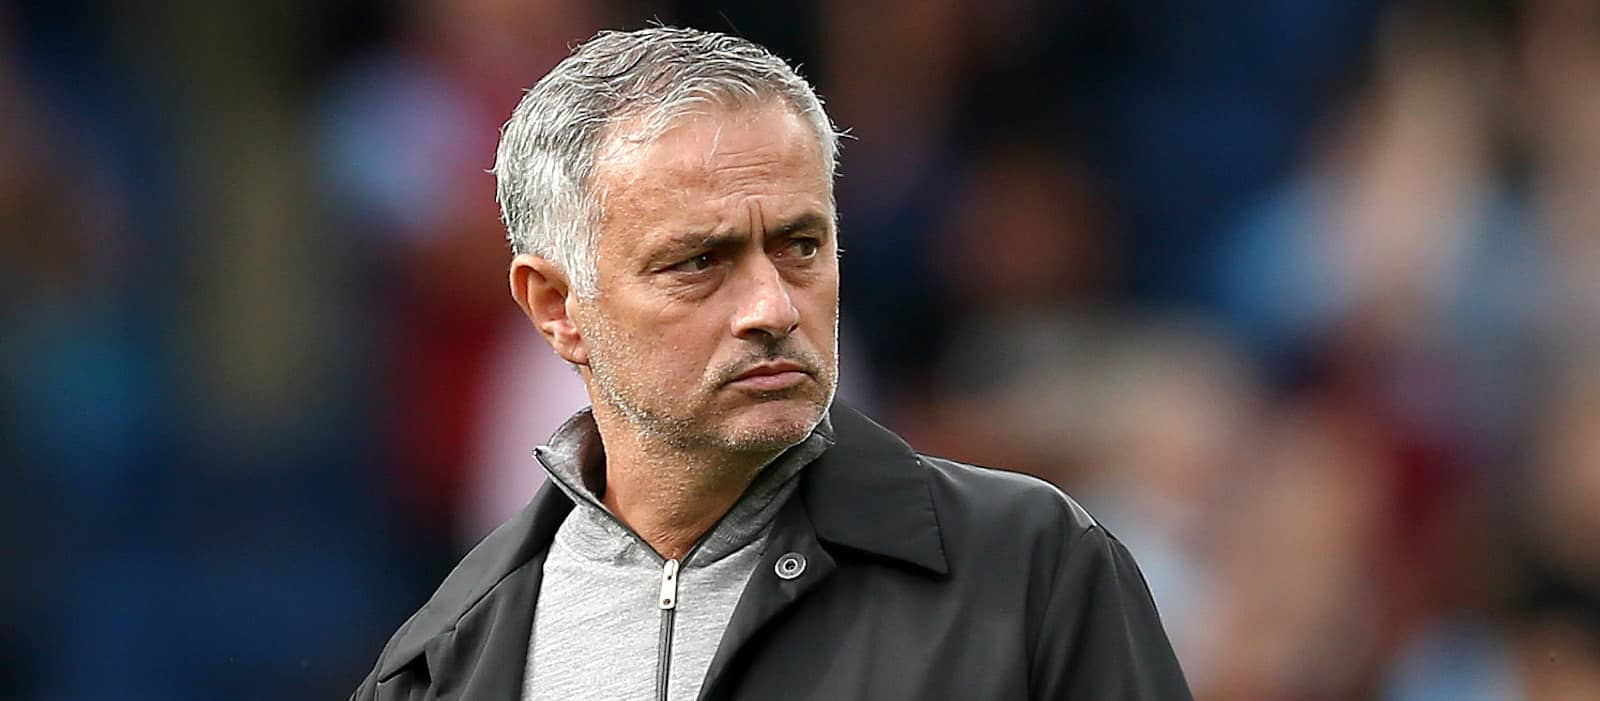 """A dream come true"": Manchester United fan who received Jose Mourinho's coat after Burnley win speaks out"